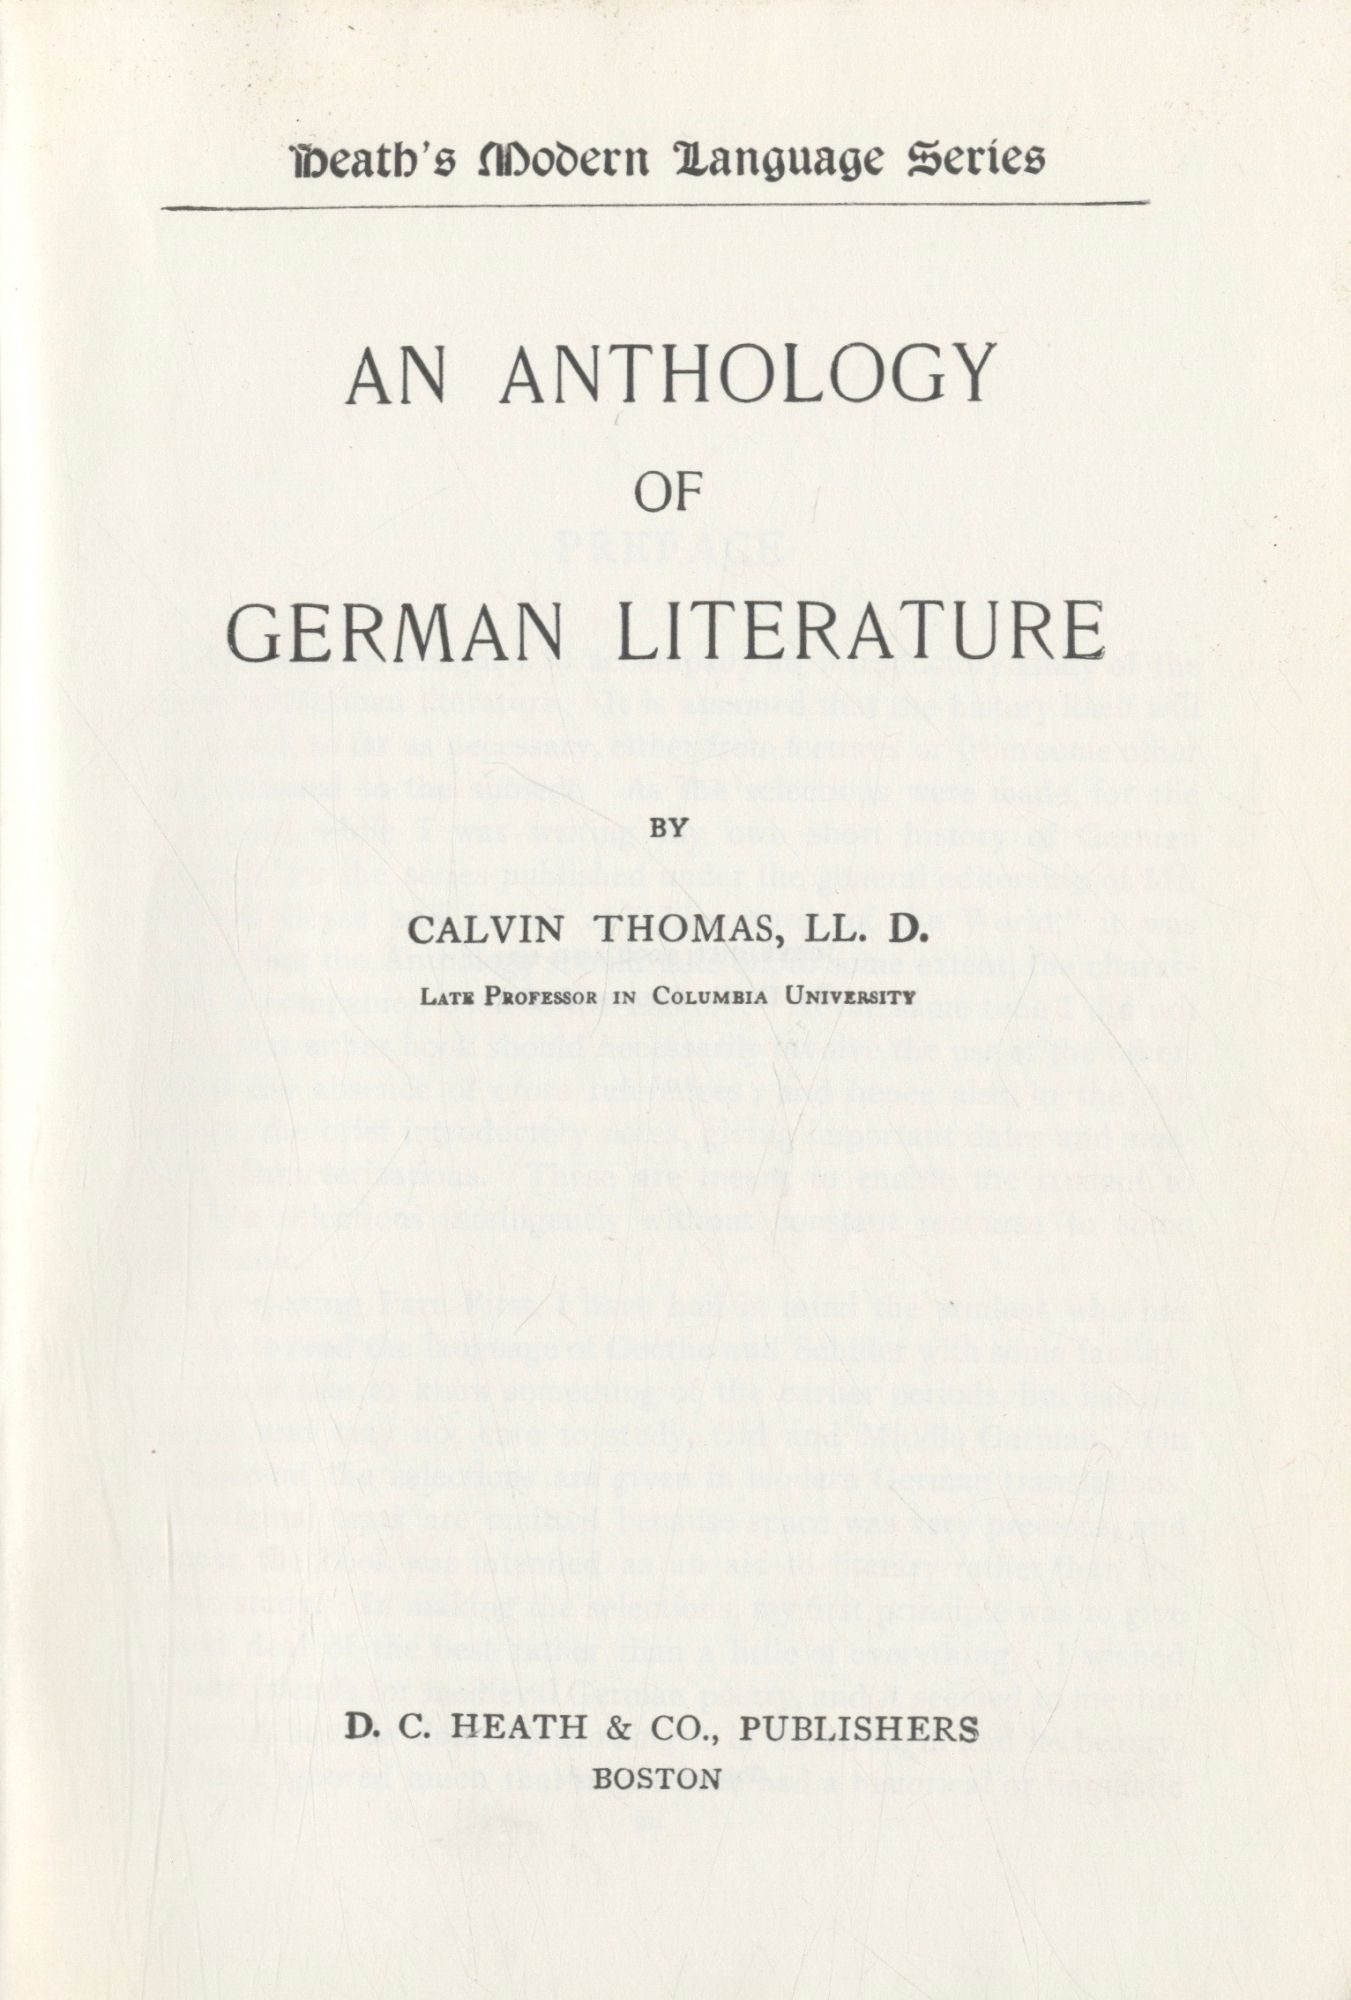 An Anthology Of German Literature. Calvin Thomas L. L. D.